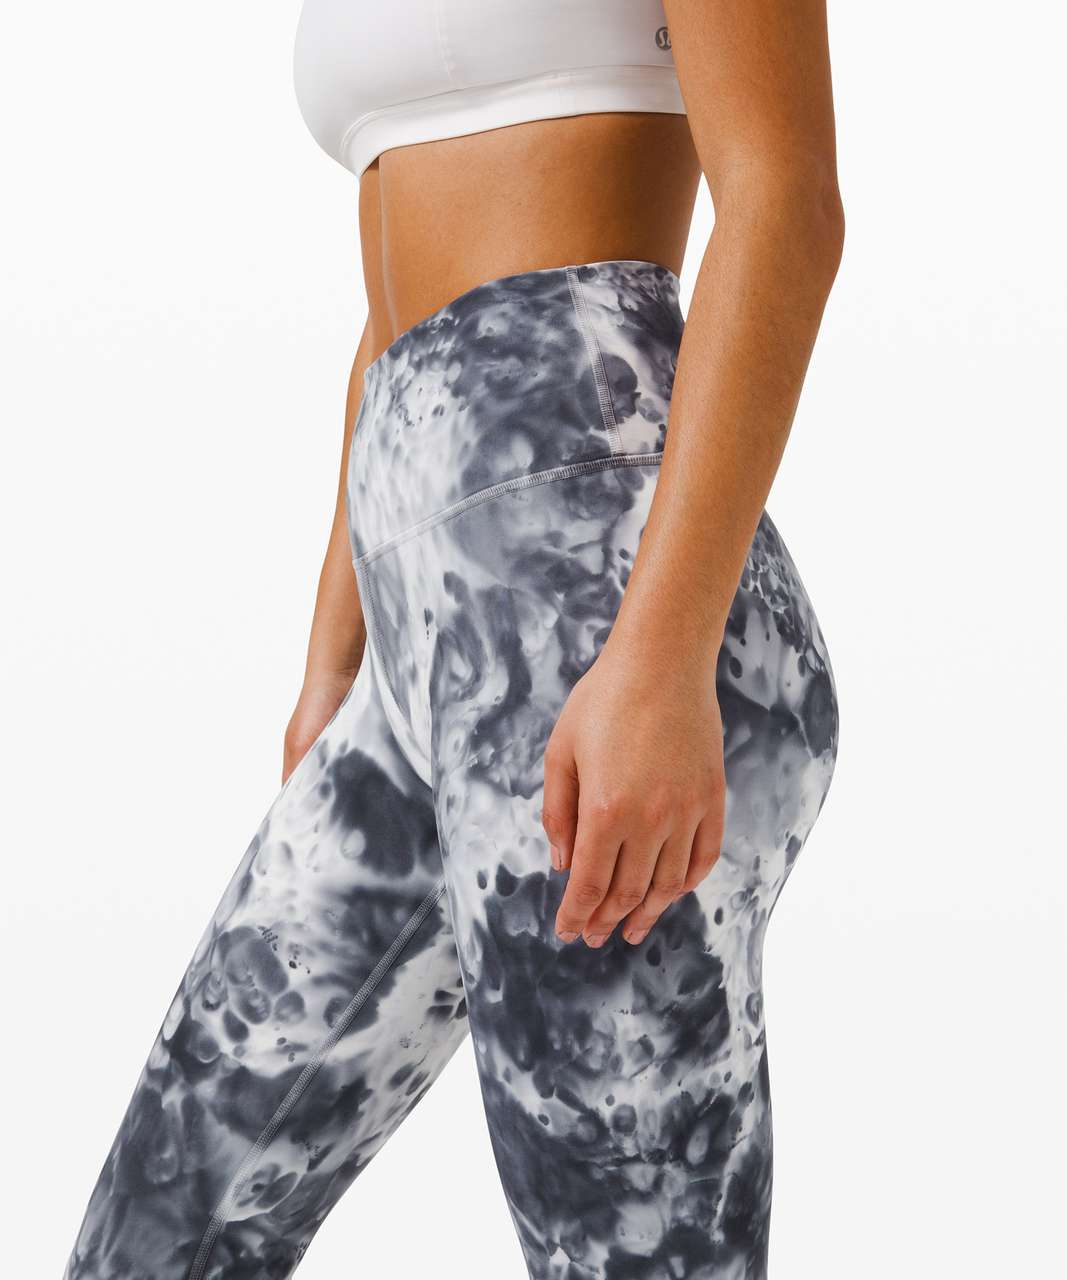 "Lululemon Wunder Under High-Rise Tight 25"" *Luxtreme - Marble Dye Classic Navy"